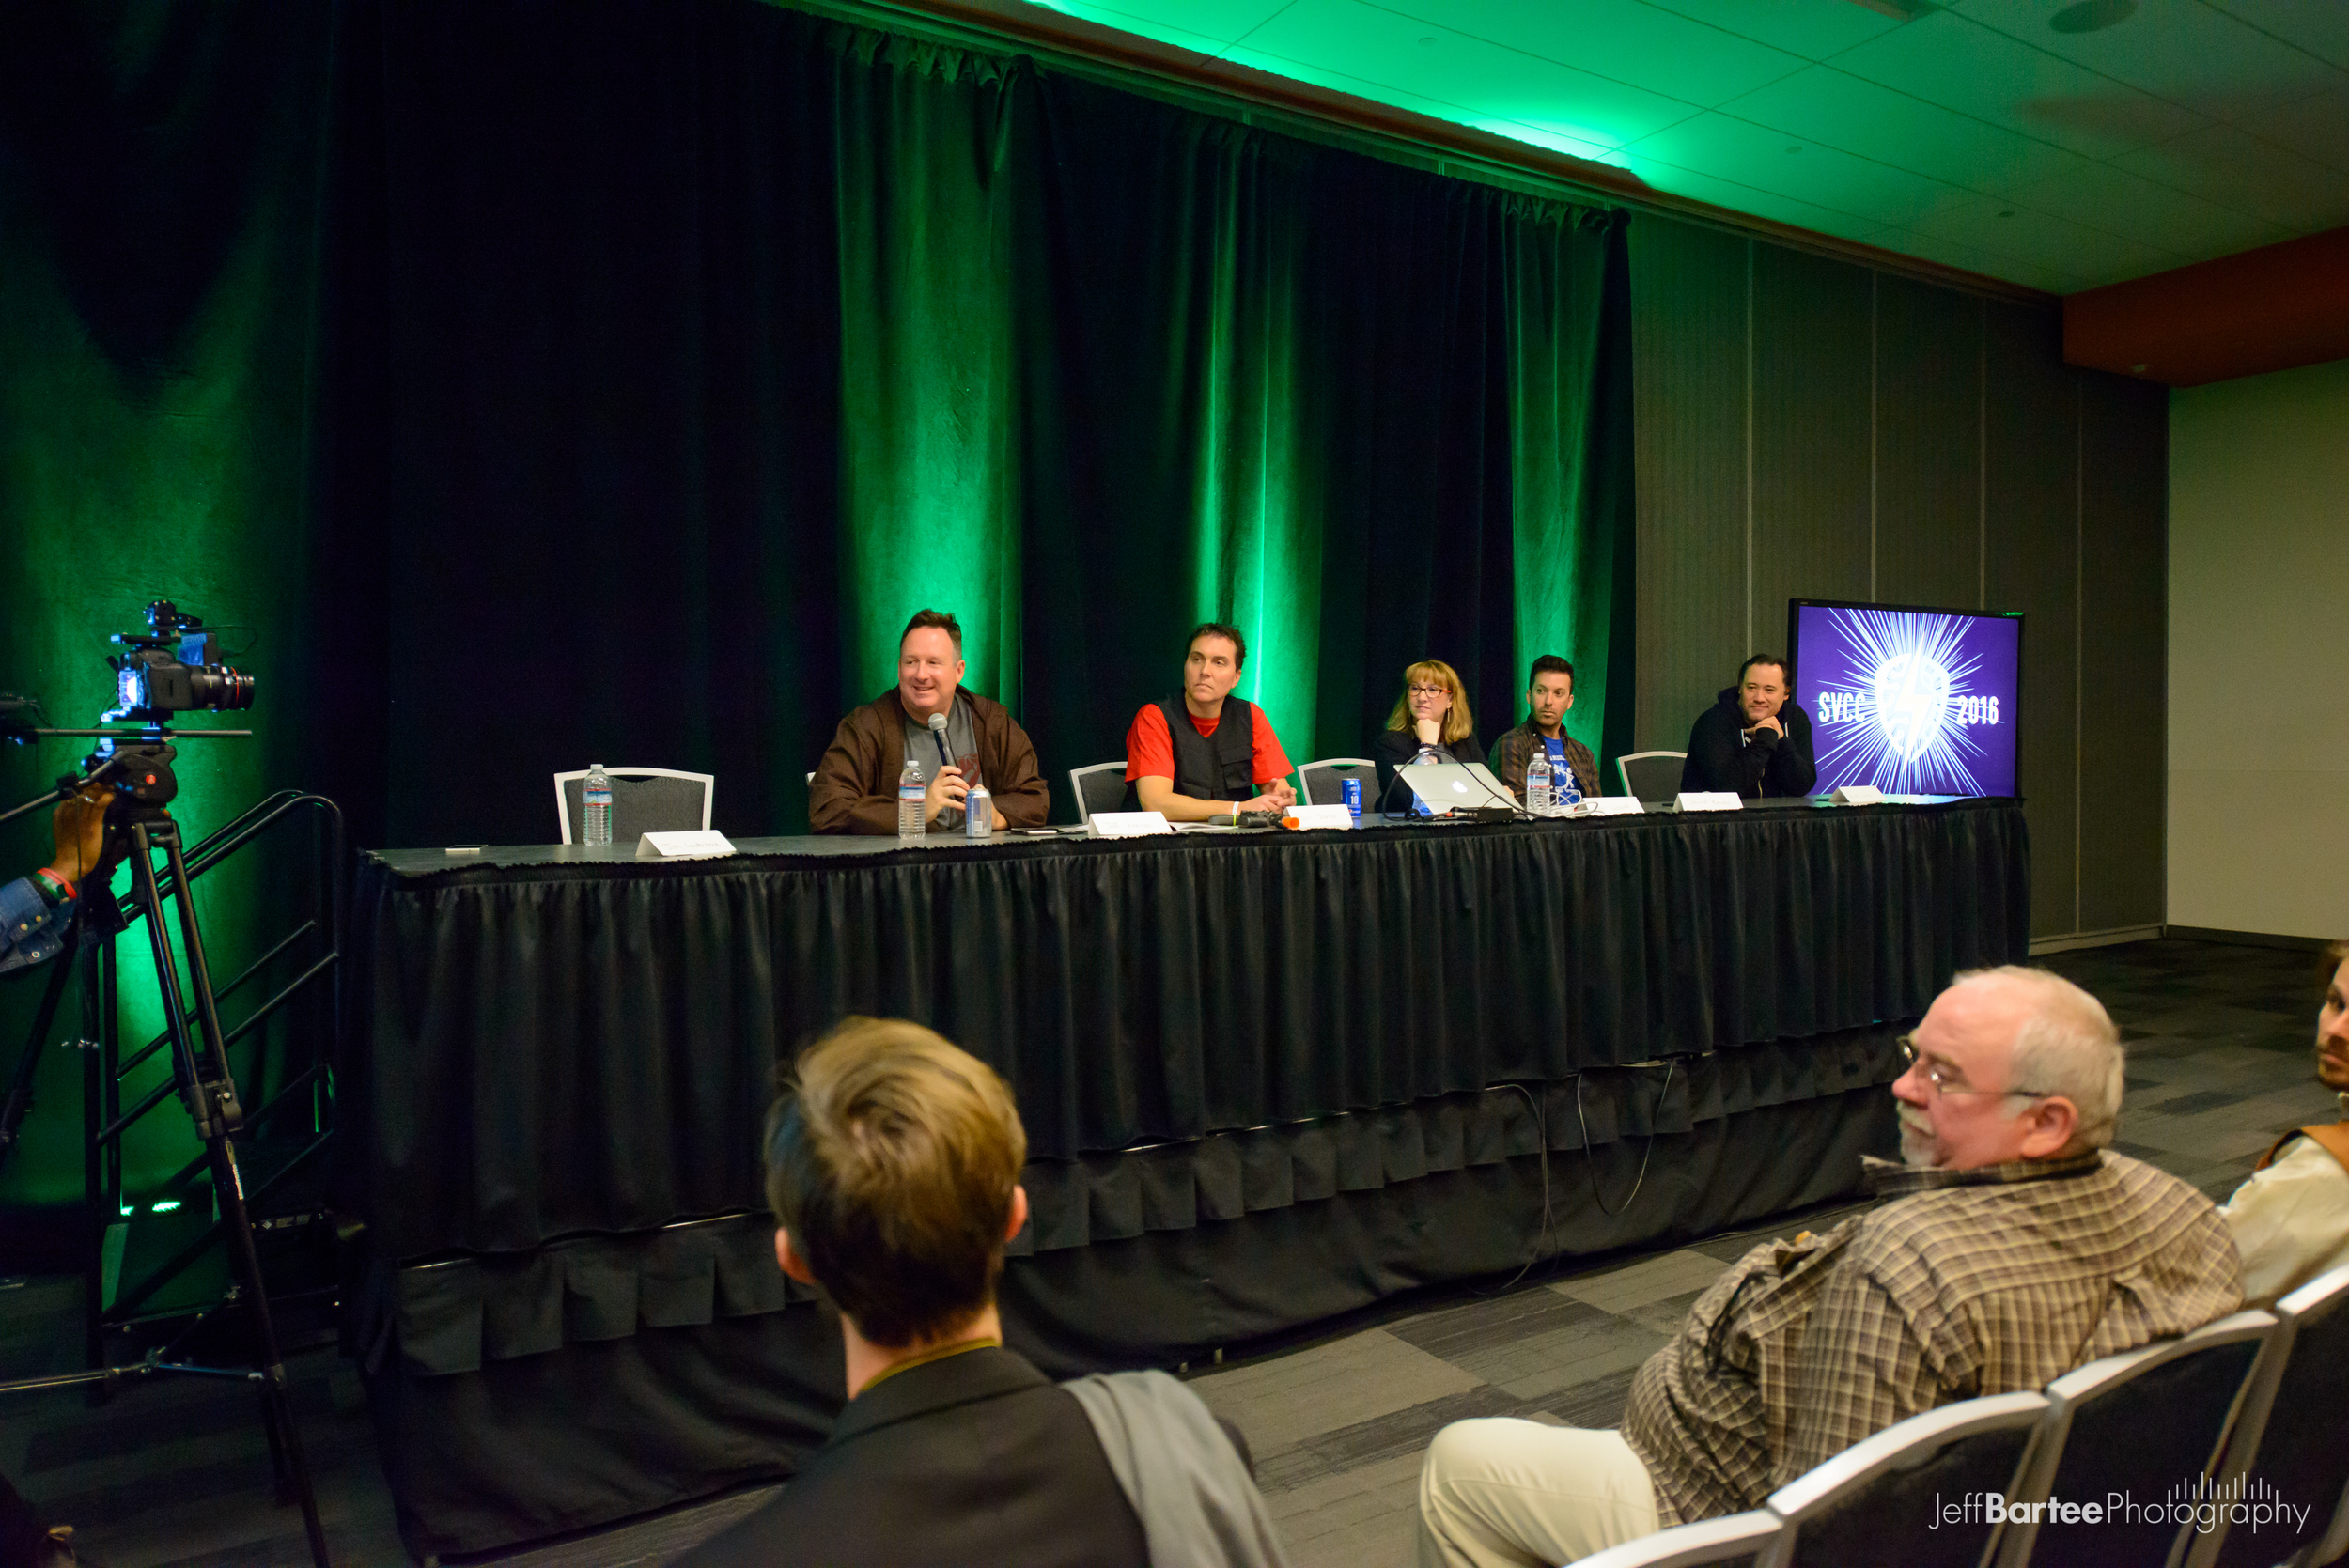 """The panel featured (from left to right) Jeff Annison (Legion M), Paul Scanlan (Legion M), Terri Lubaroff (representing Meltdown Comics), David Brooks (Stoopid Buddy Stoodios), and Alex Lieu (42 Entertainment/Animal Repair Shop). It was moderated by Jim Louderback (VidCon/Revision 3) who went """"Geraldo style"""" into the audience fielding questions."""